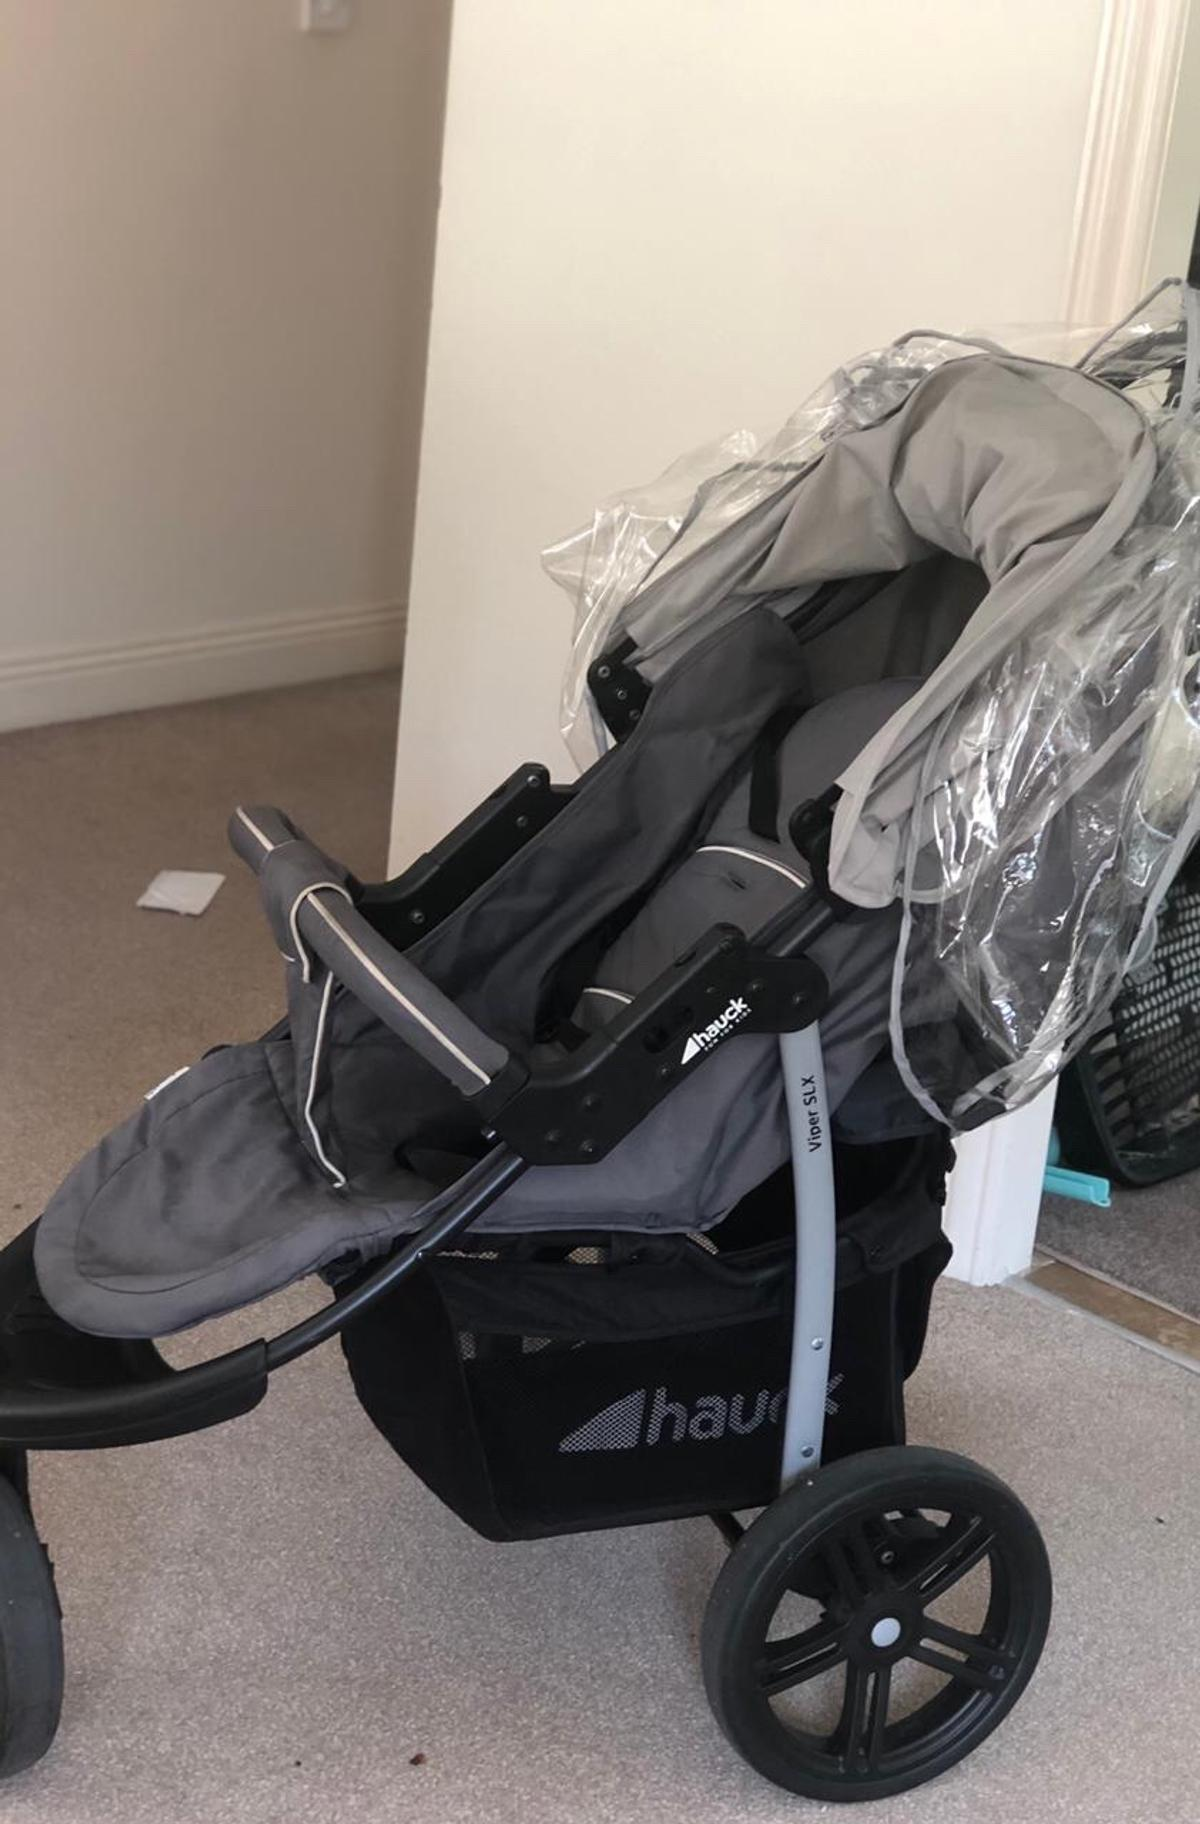 Hauck Shopper Slx Zubehör Hauck Pushchair Viper Slx For Sell In Tf3 Telford For 30 00